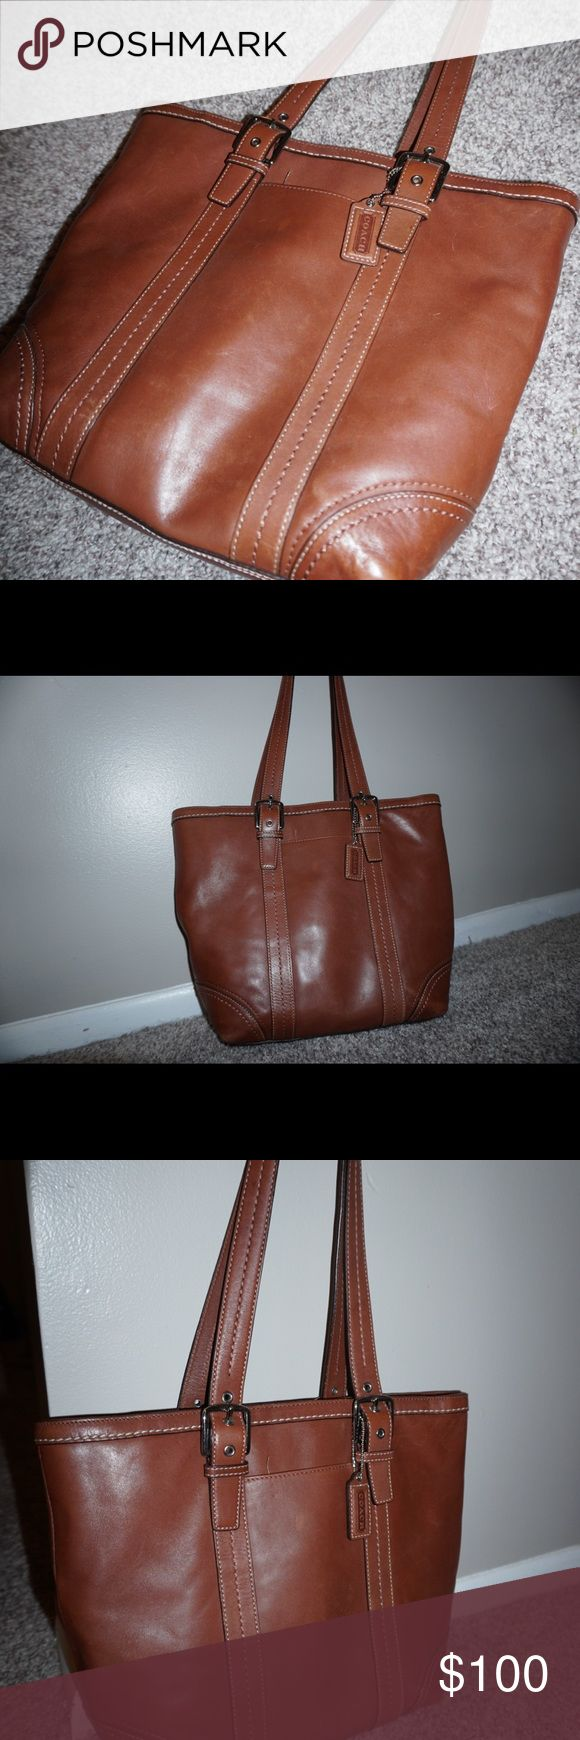 brown leather Coach purse beautiful brown leather Coach purse! Perfect size, great quality! Coach Bags Shoulder Bags